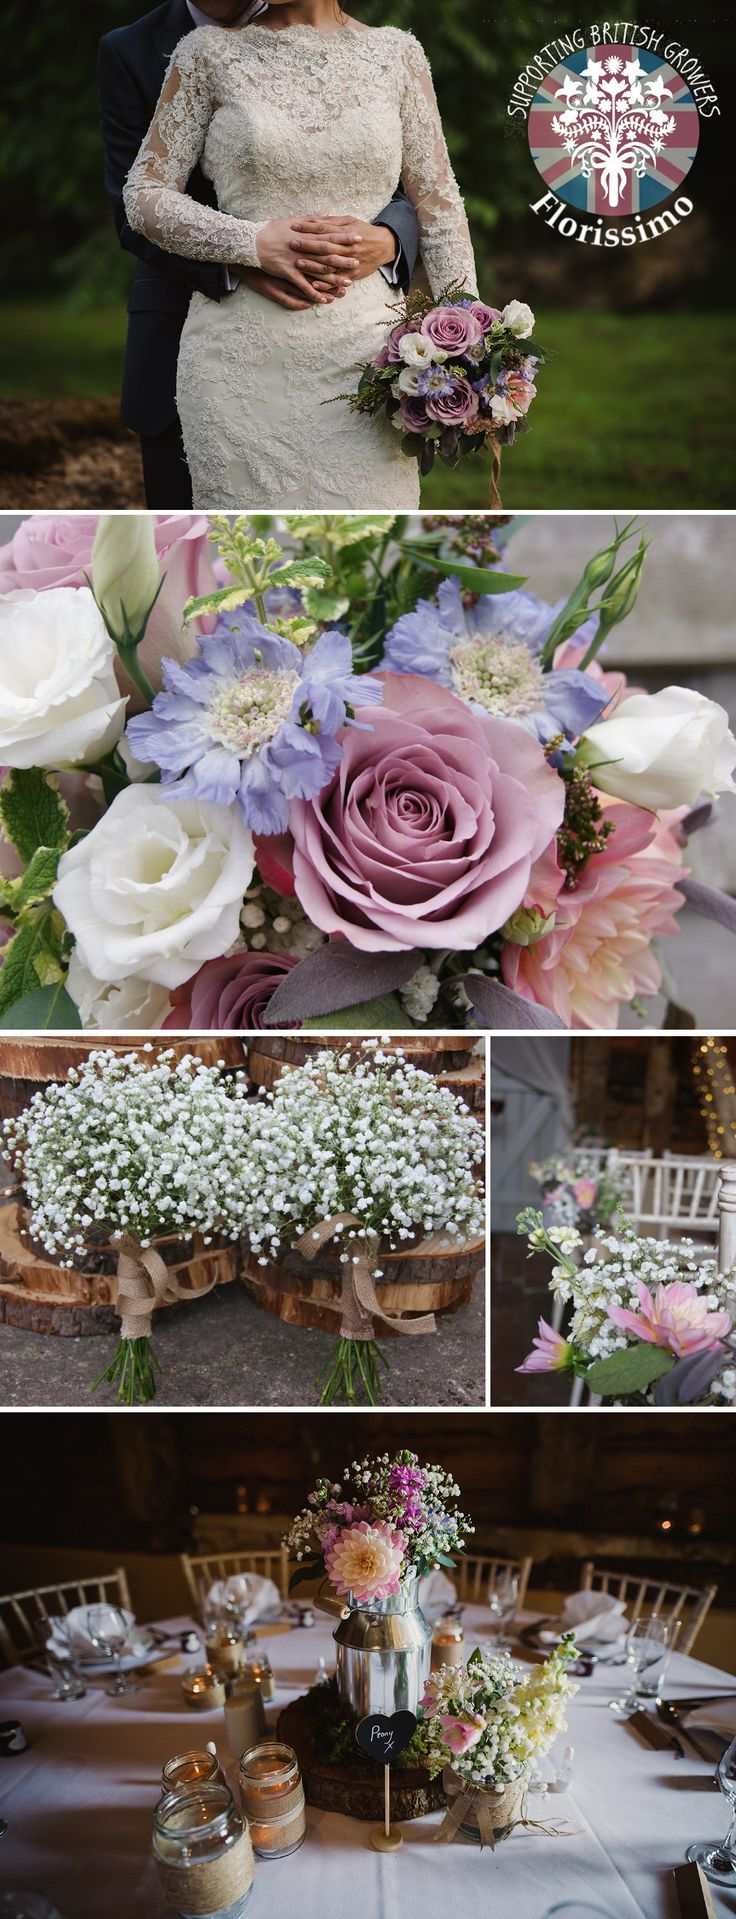 Florissimo, Shropshire  - Flowers for weddings, events and businesses | British-grown seasonal flowers are perfect for eco-weddings! British-grown dahlia generally avail Jul-Oct; lisianthus, May-Sept; scabious, Jun-Oct; eryngium thistle Jun-Aug; phlox, Jul-Sept; stock, May-Oct. These were for a wedding at Pimhill Barn, Shropshire. Some of these images are courtesy of Amy Taylor.